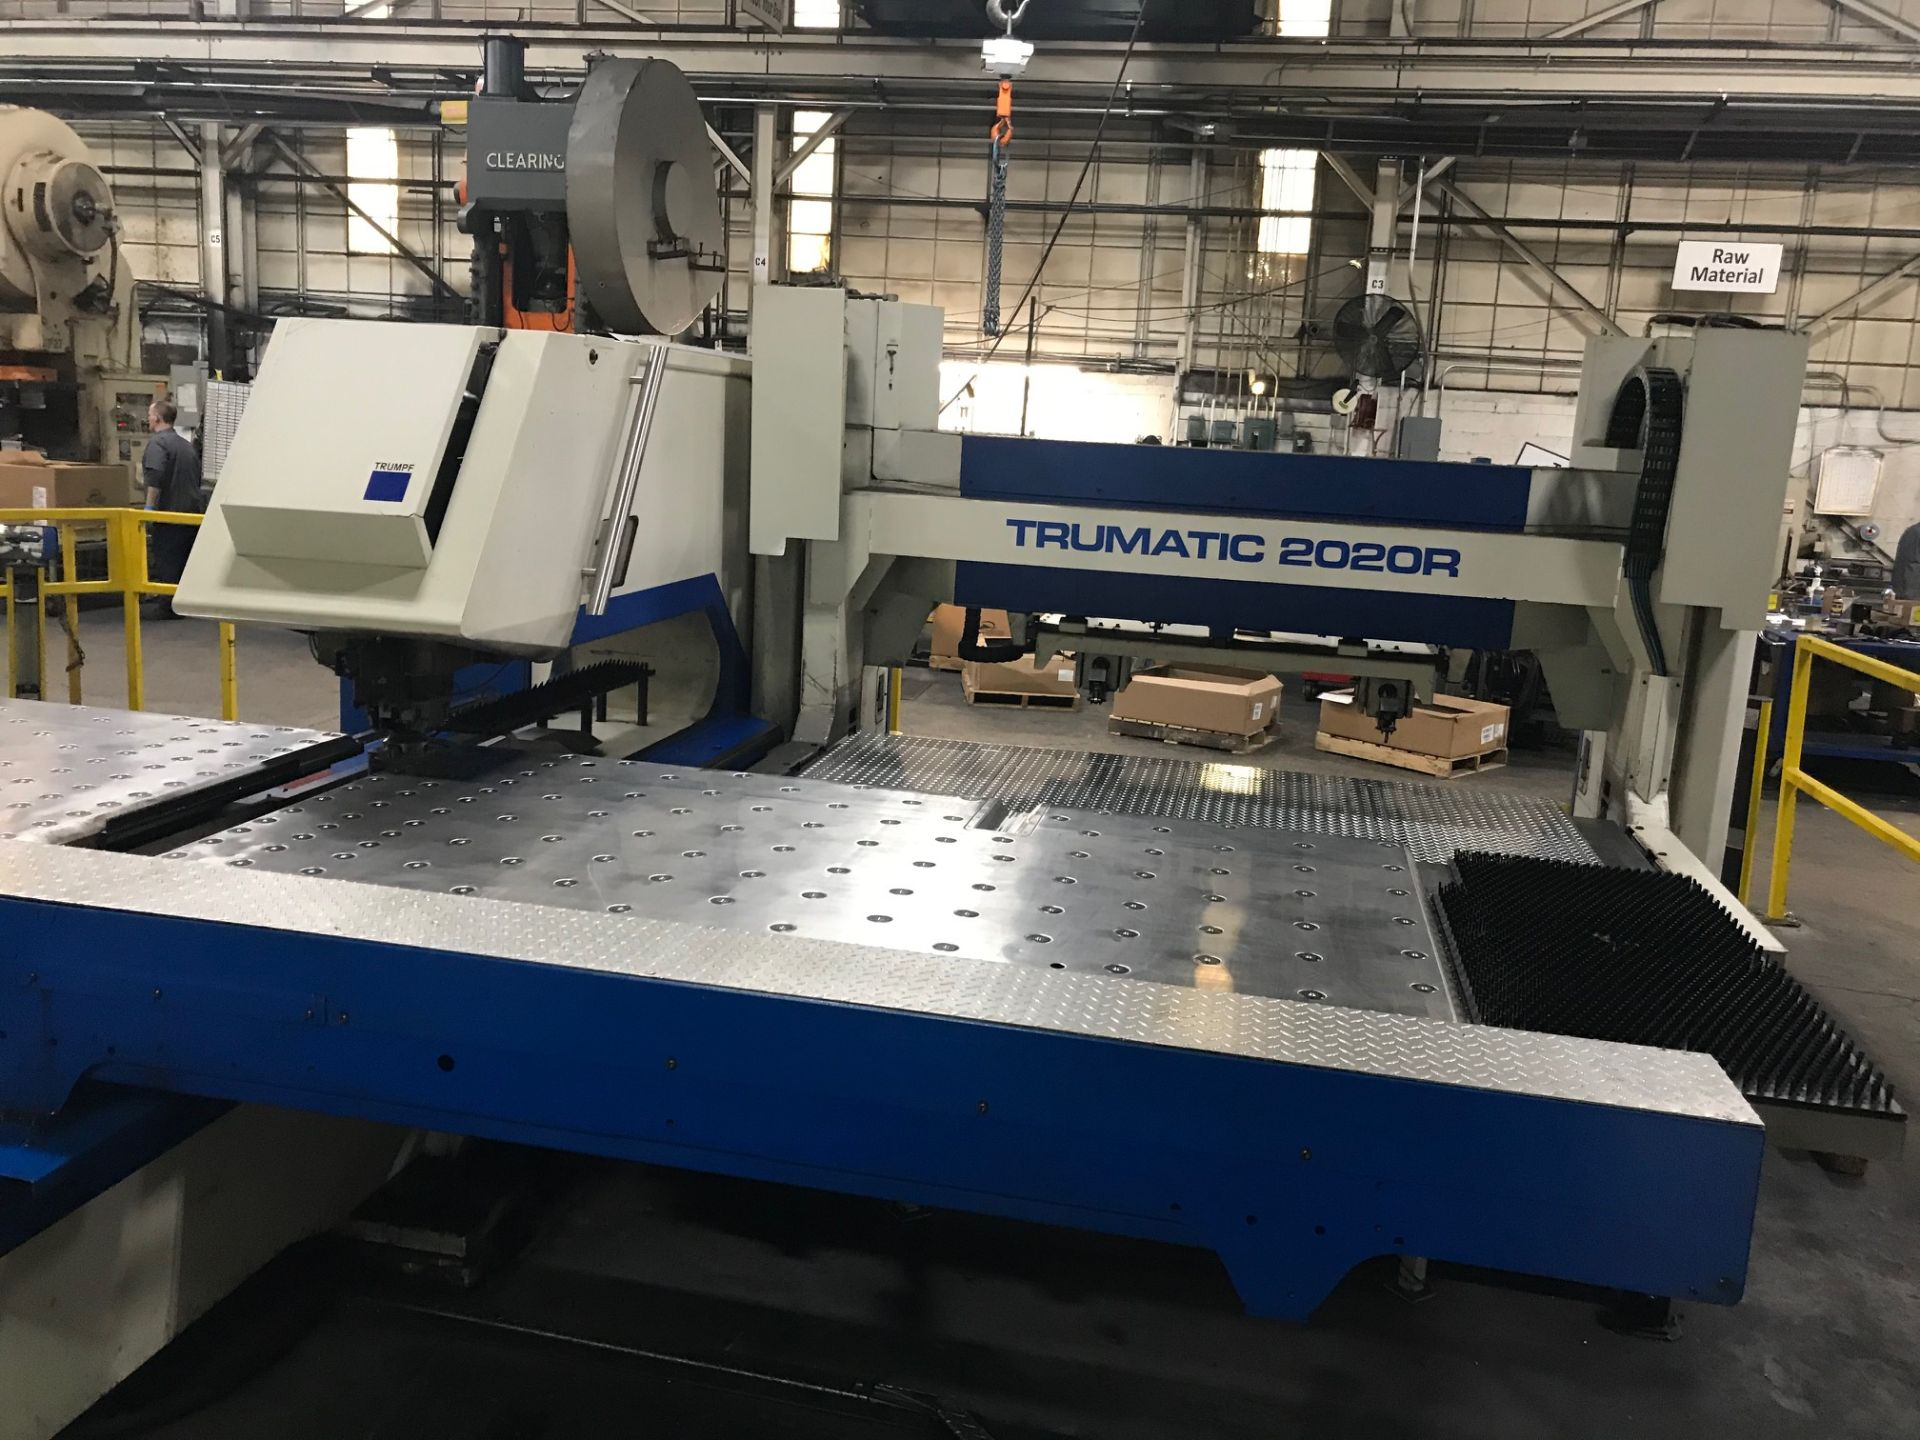 "Lot 2 - Trumpf TC 2020R CNC Punch w/ Sheetmaster Compact LUL, 22 Ton, 48"" x 96"" Sheet Capacity, Tooling"